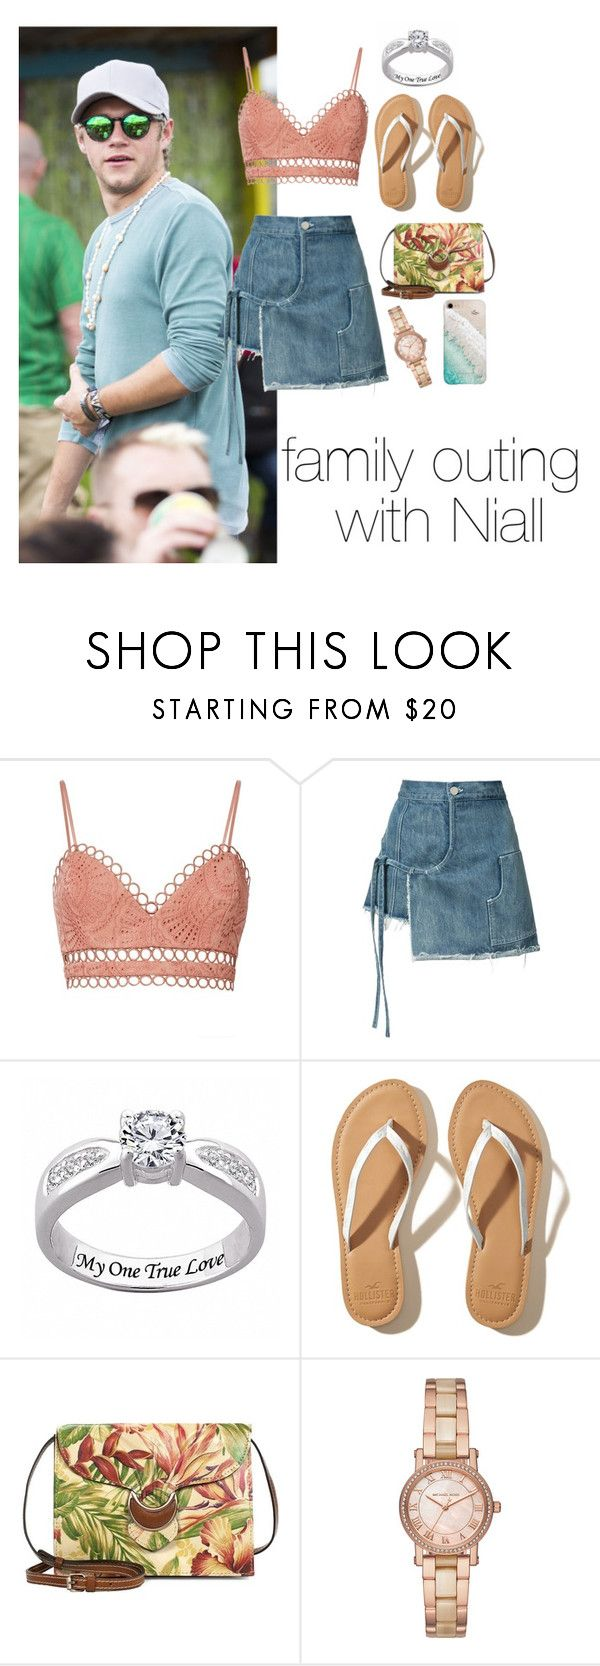 """family outing with Niall"" by haleyssprefrences ❤ liked on Polyvore featuring Zimmermann, Sandy Liang, Hollister Co., Patricia Nash, Michael Kors and Gray Malin"